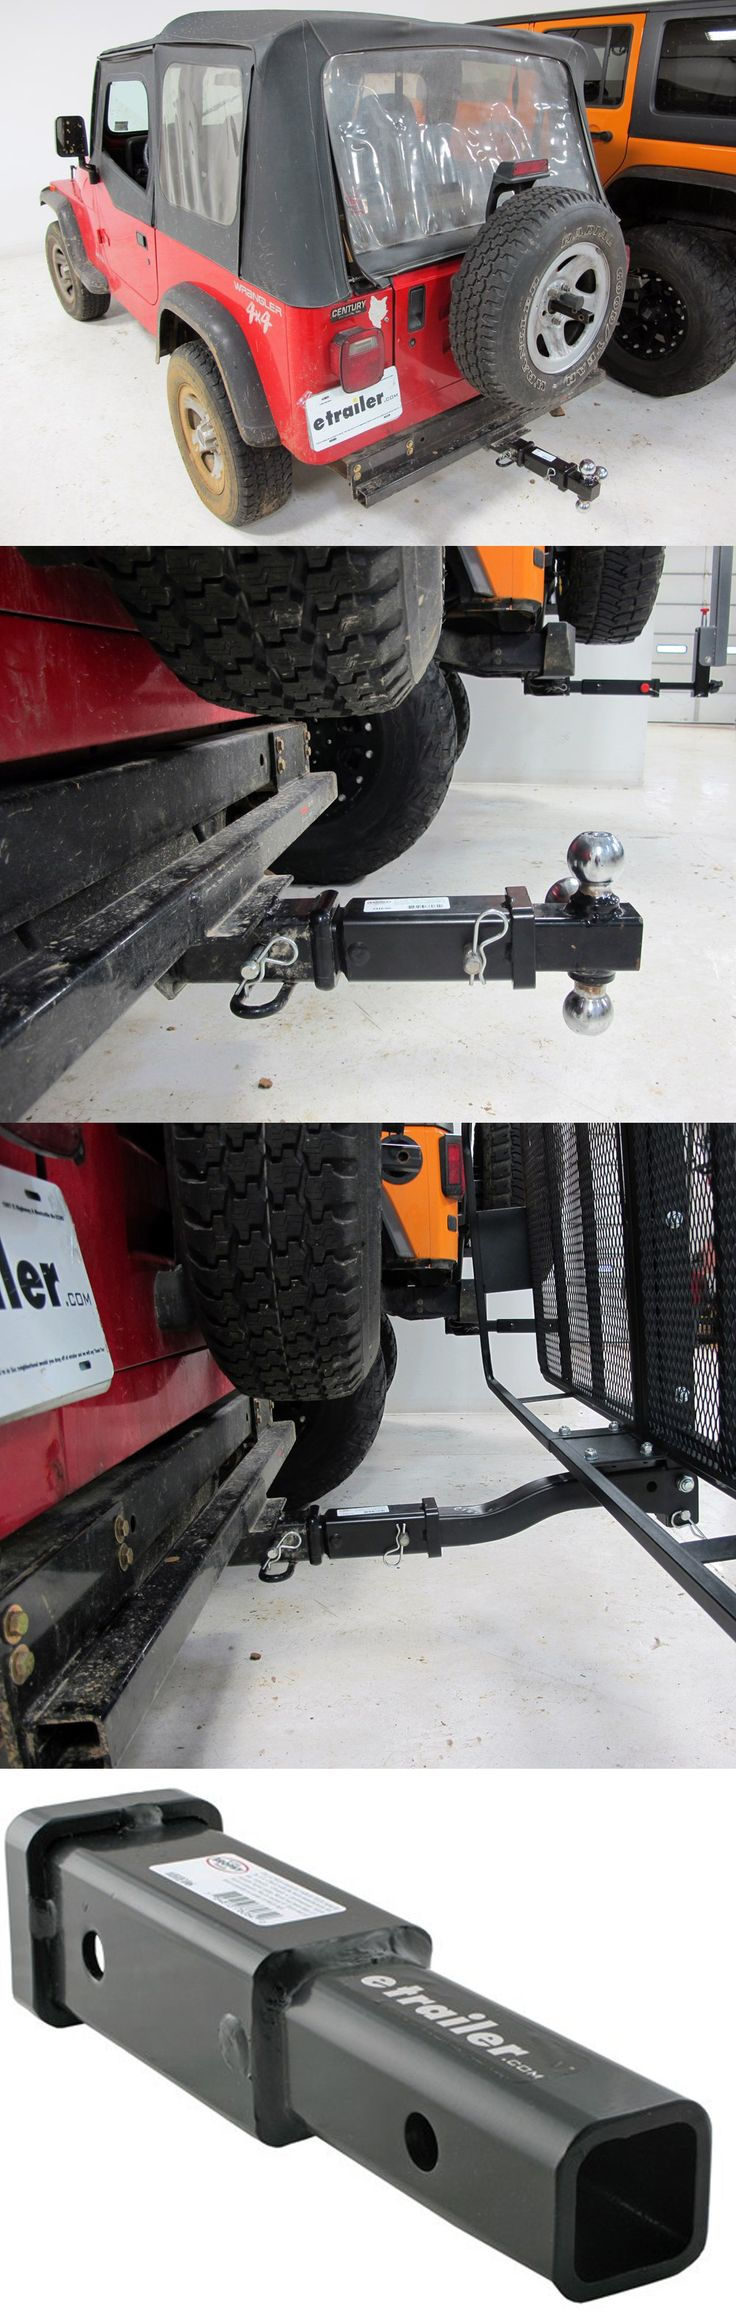 7 trailer hitch extender compatible with the jeep wrangler prevent hitting trailer or